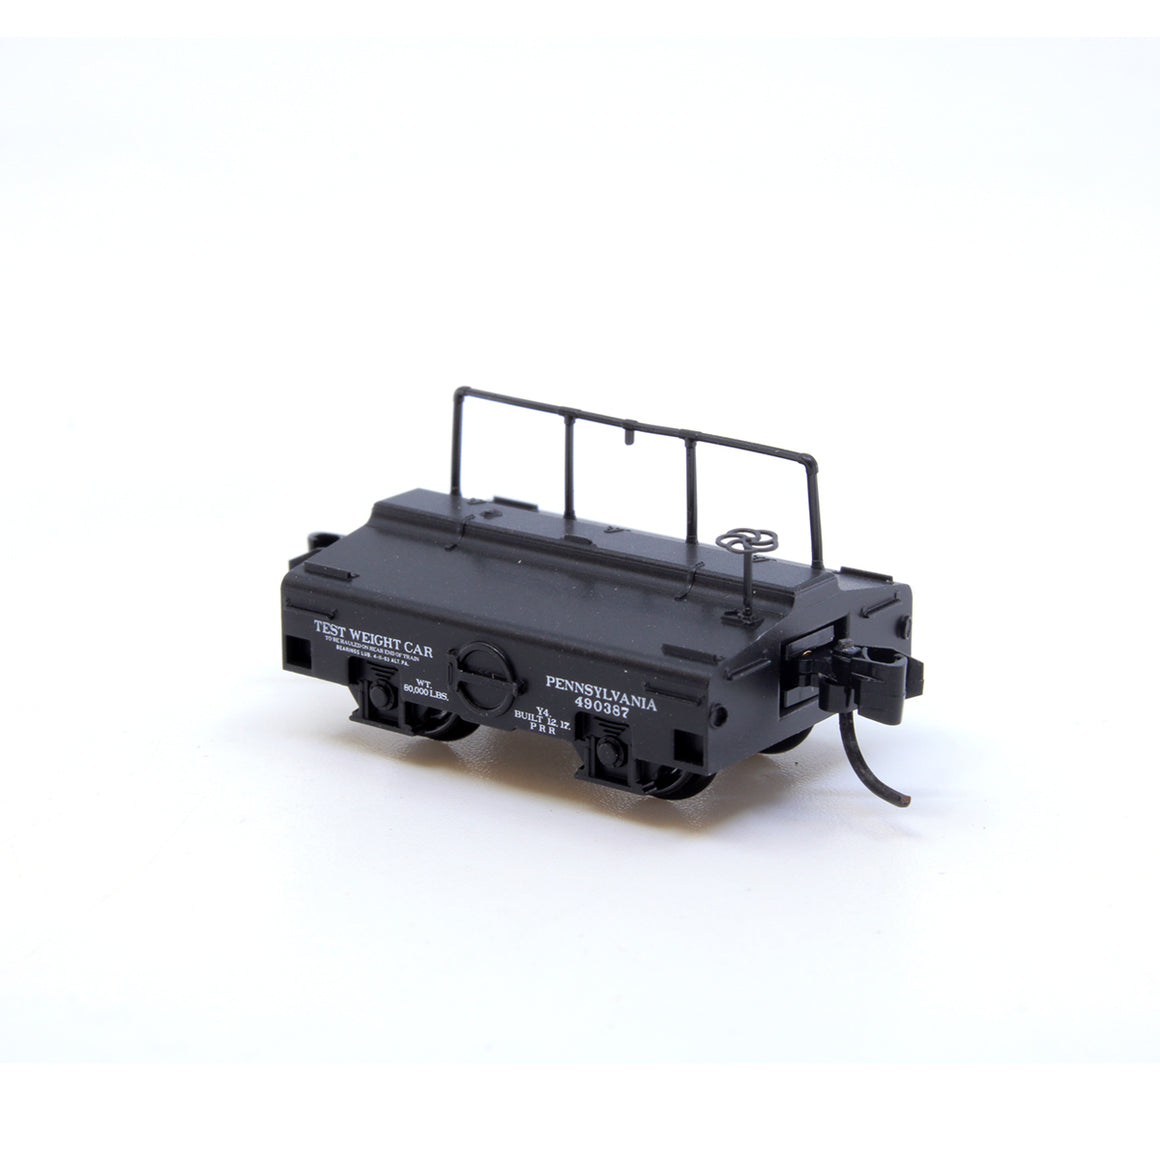 N Scale: Scale Test Car - Pennsylvania